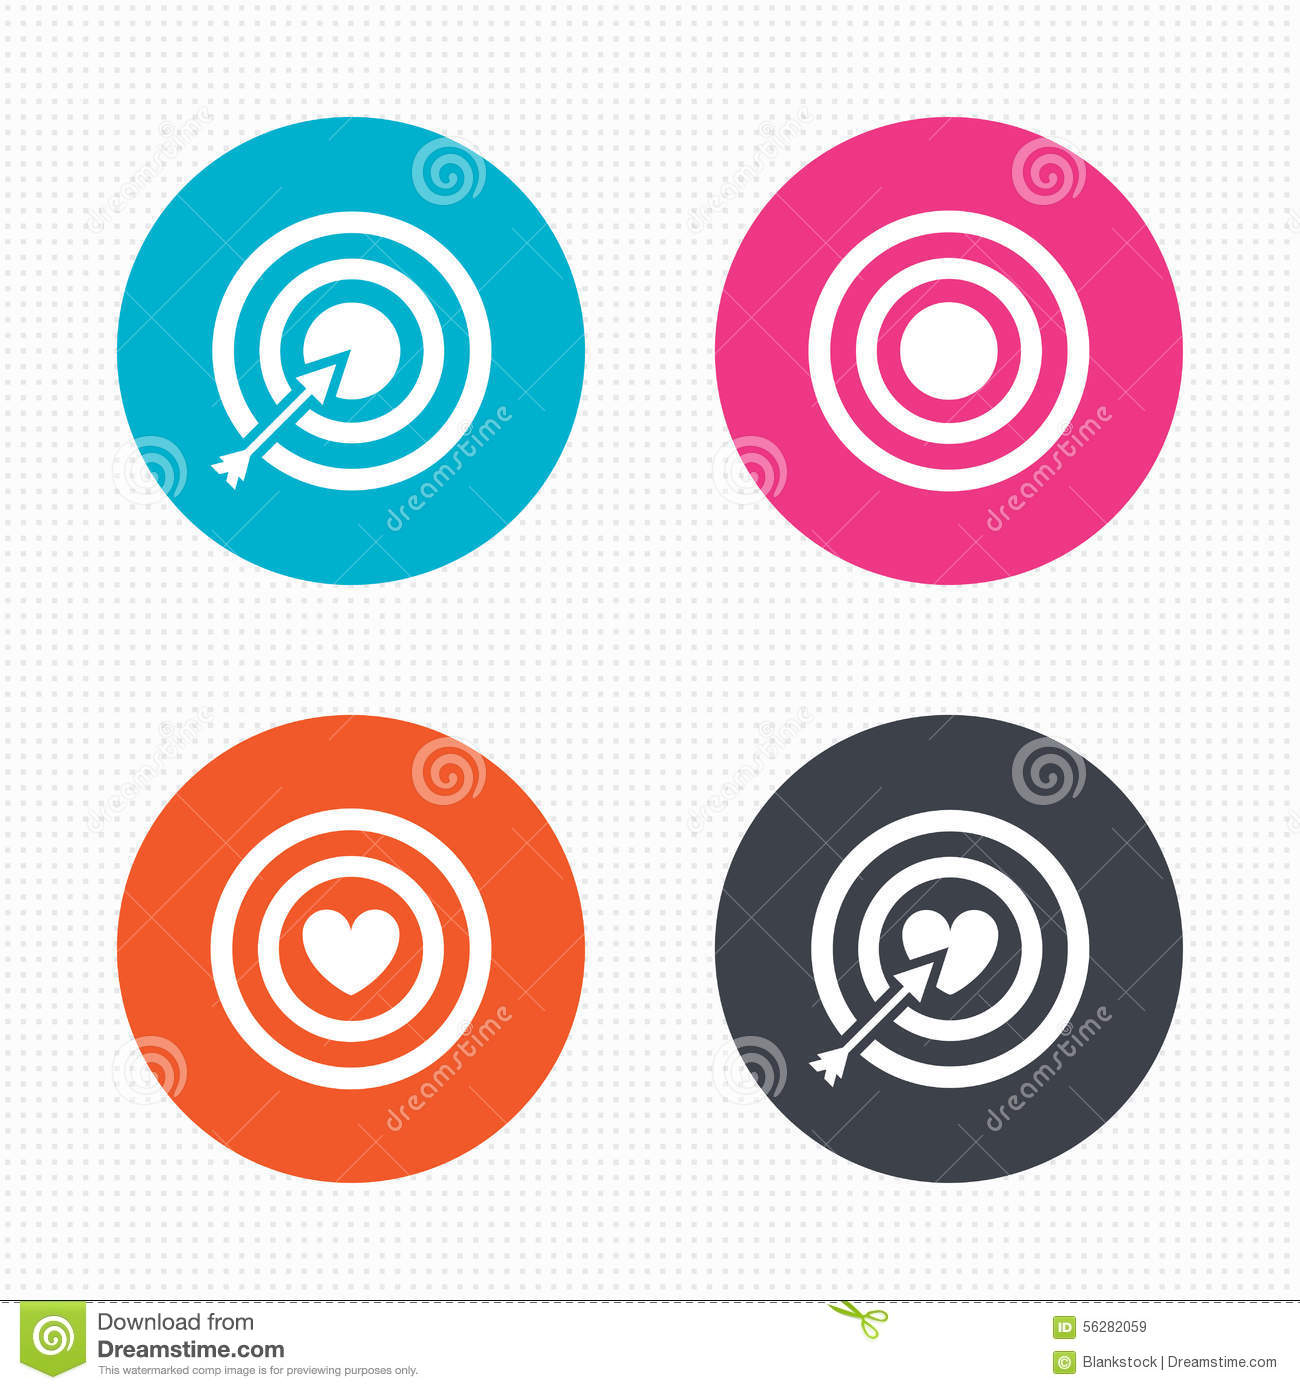 Arrow circle target clipart freeuse library Arrow circle target clipart - ClipartFest freeuse library